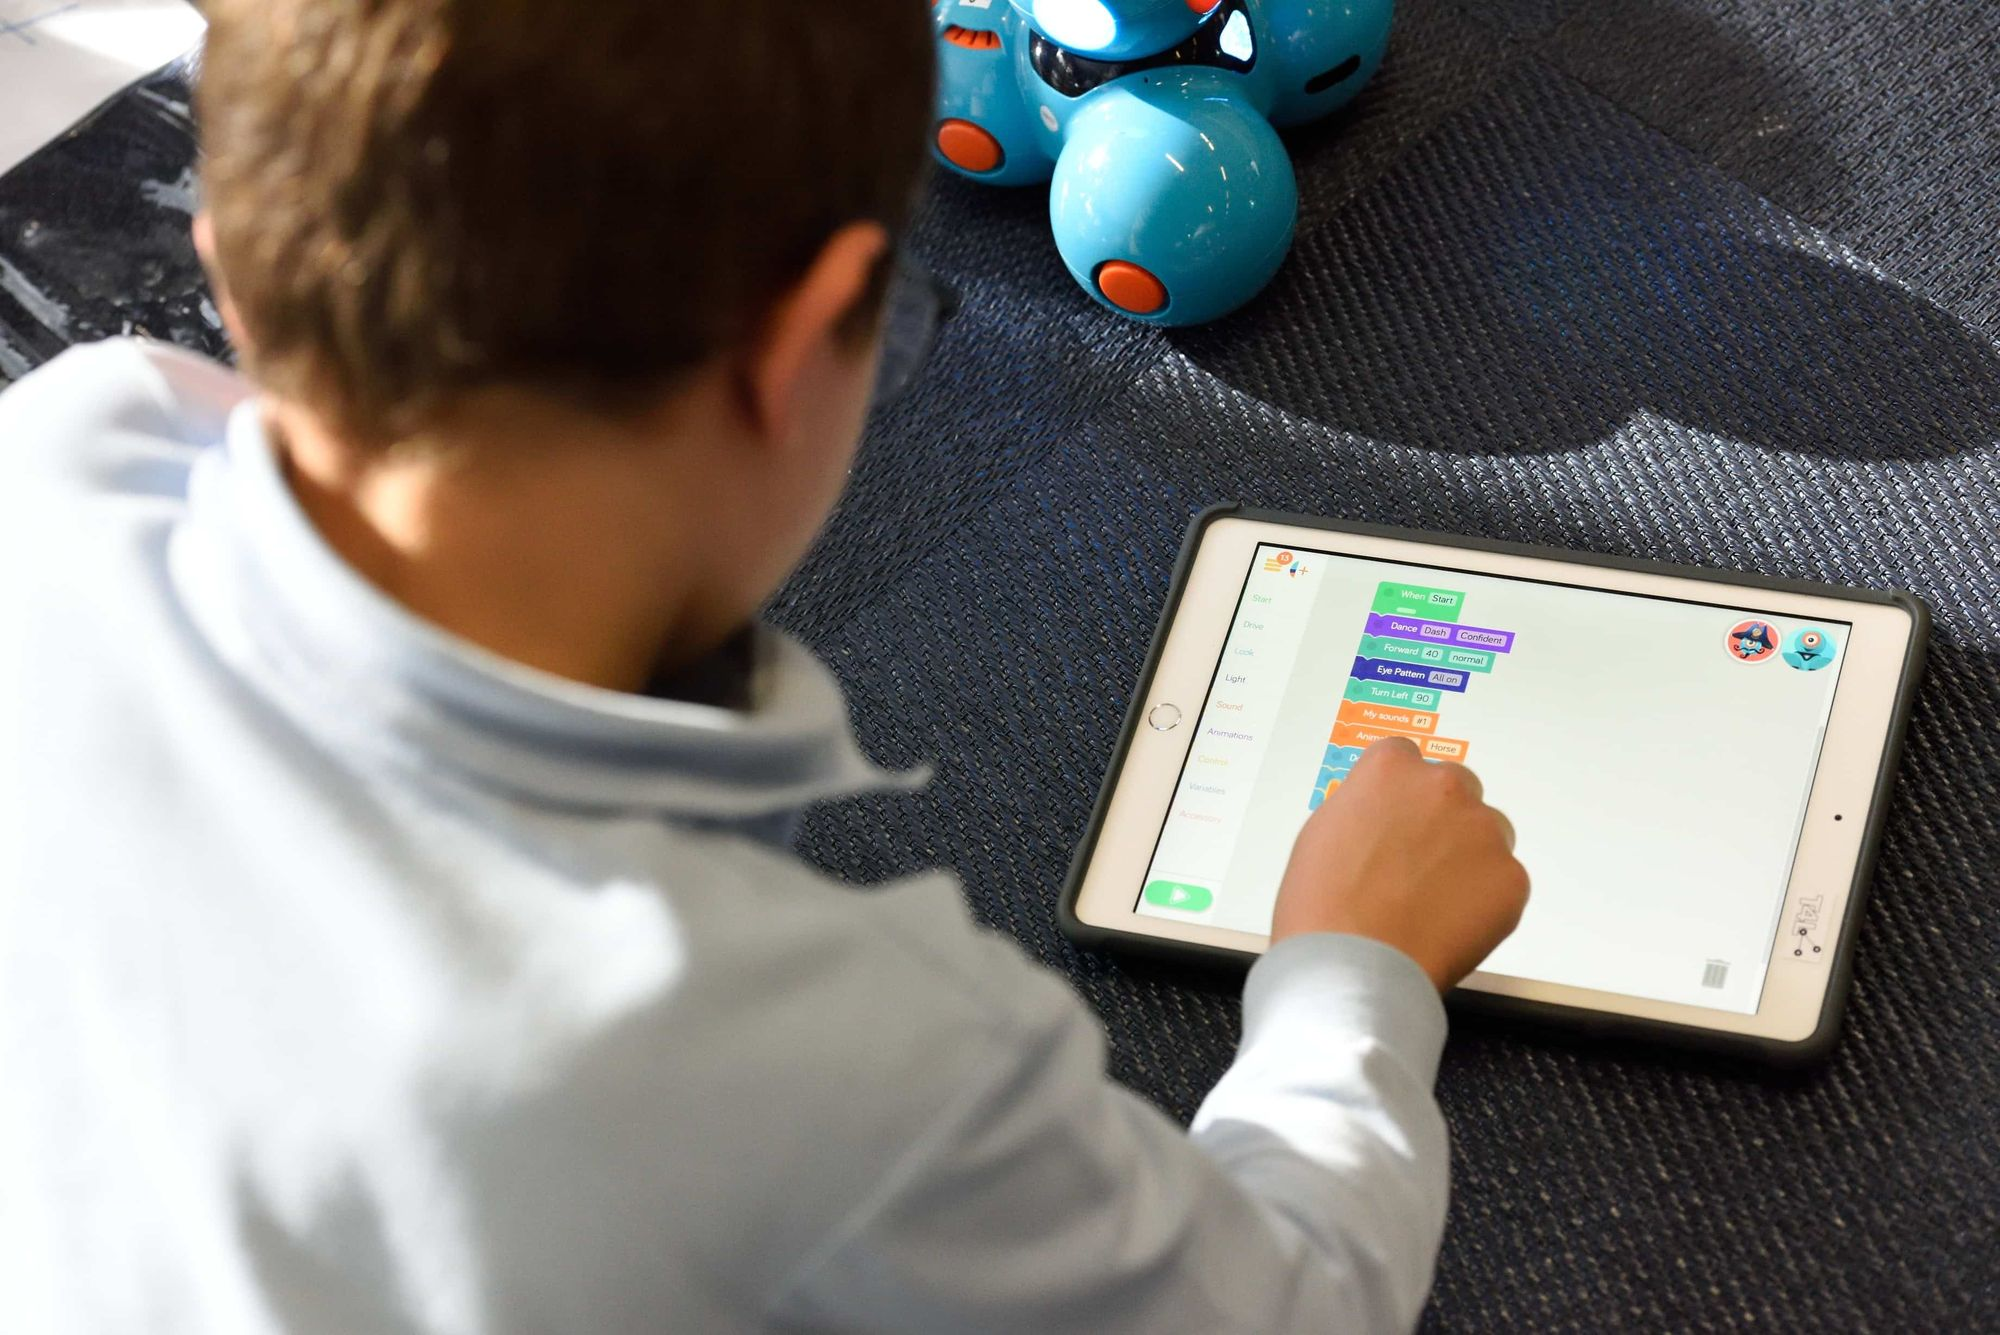 A boy student learning using games on a tablet.